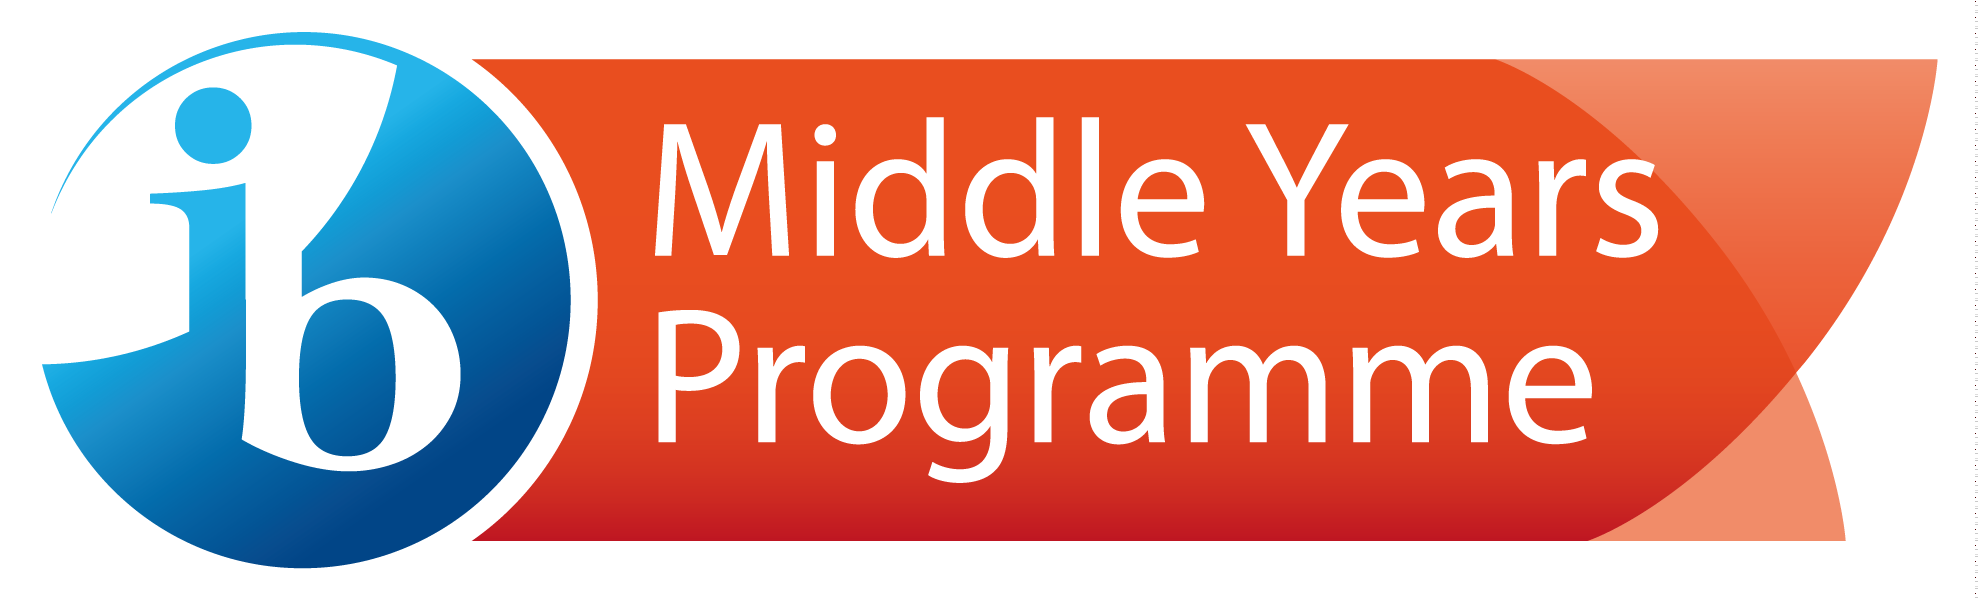 middle year program logo